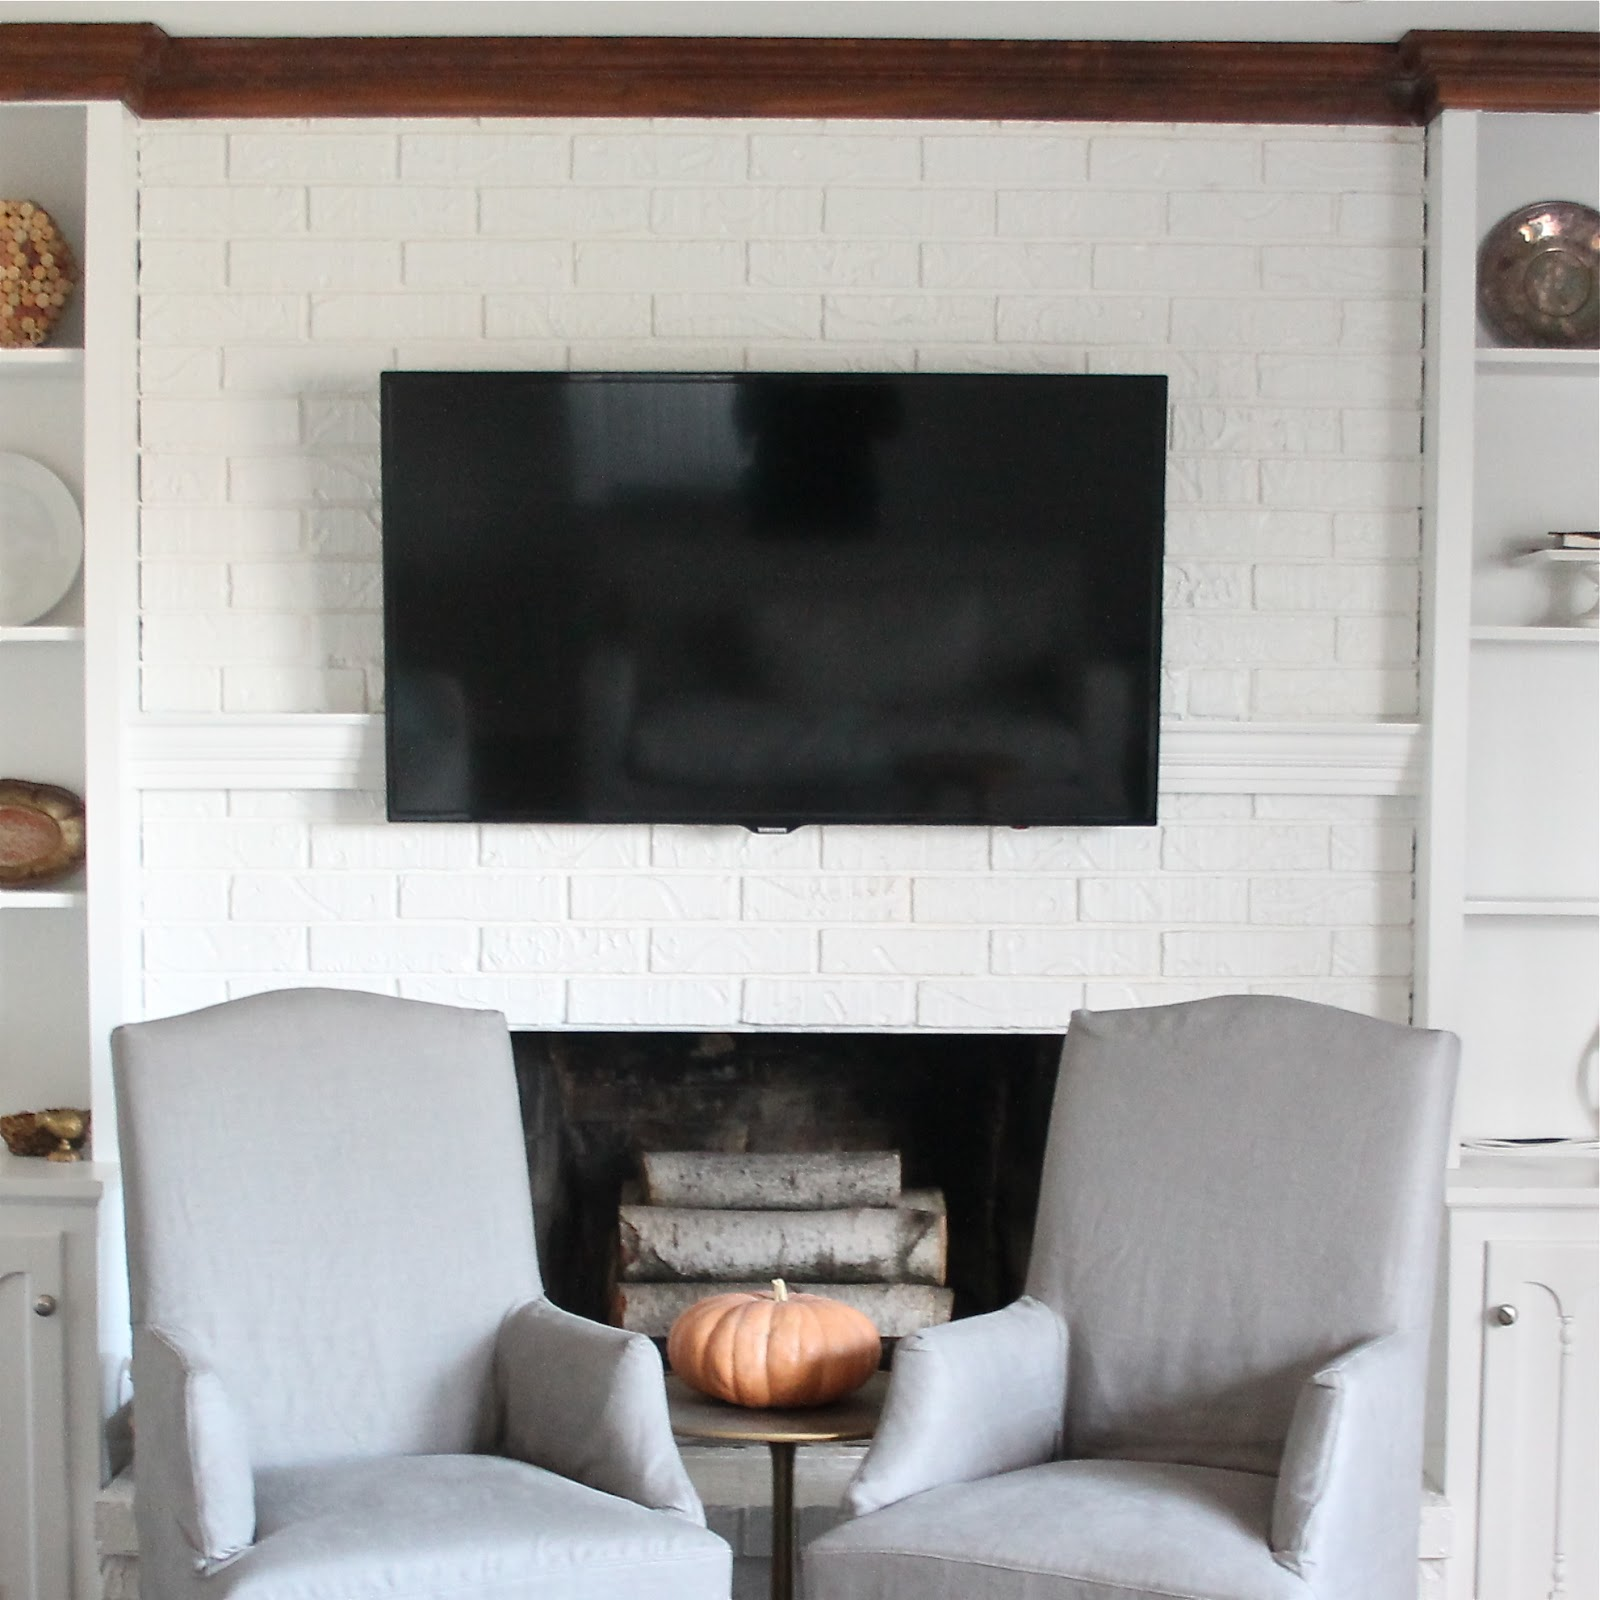 Hiding Cord on Wall Mount for Flat Screen TV | DIY Mantel ...